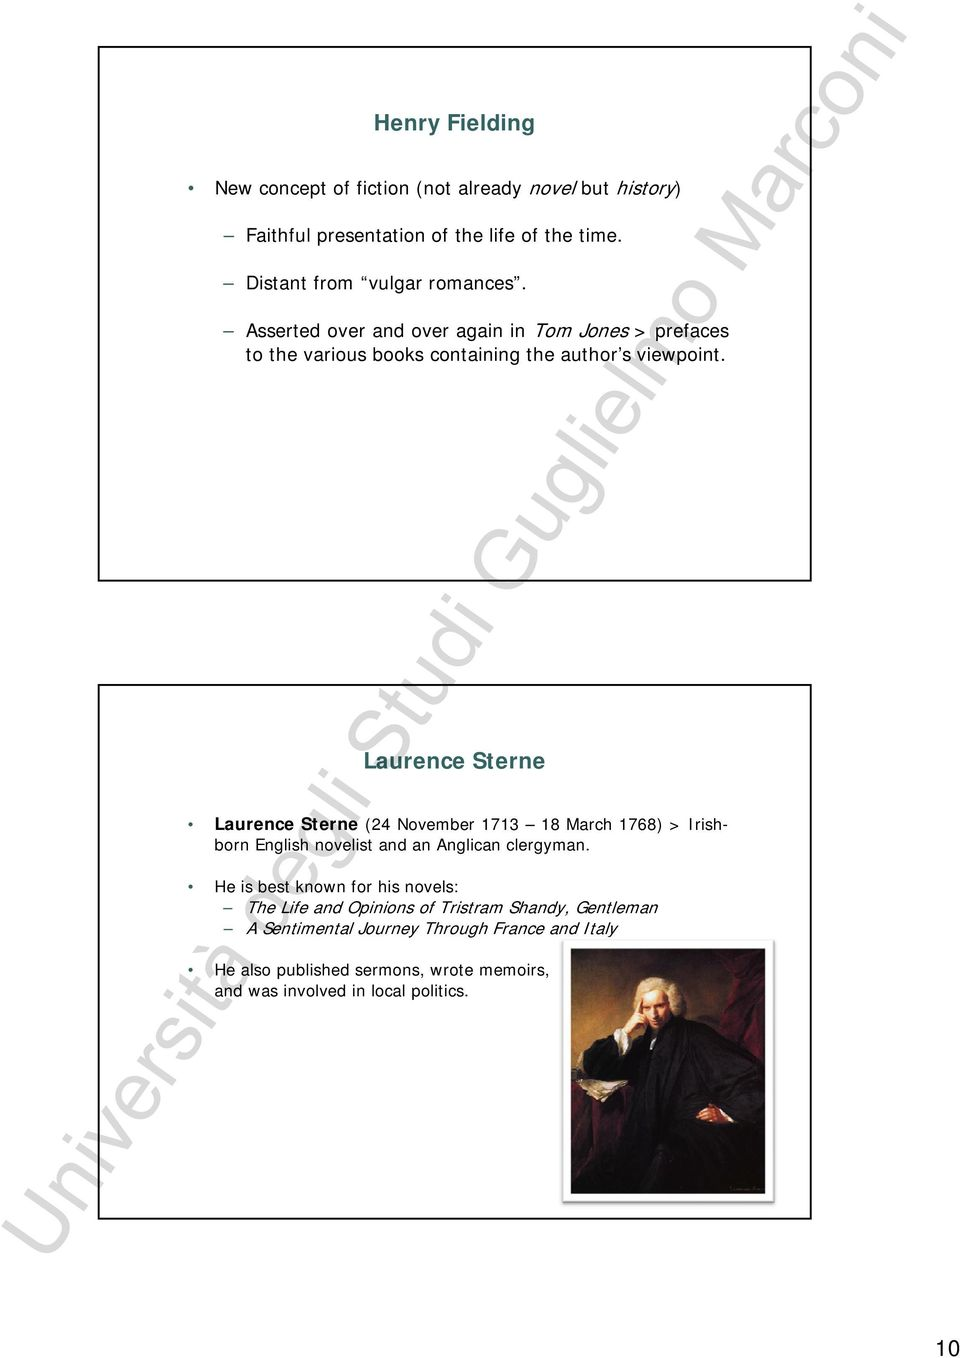 Laurence Sterne Laurence Sterne (24November1713 18March1768)>Irishborn English novelist and an Anglican clergyman.